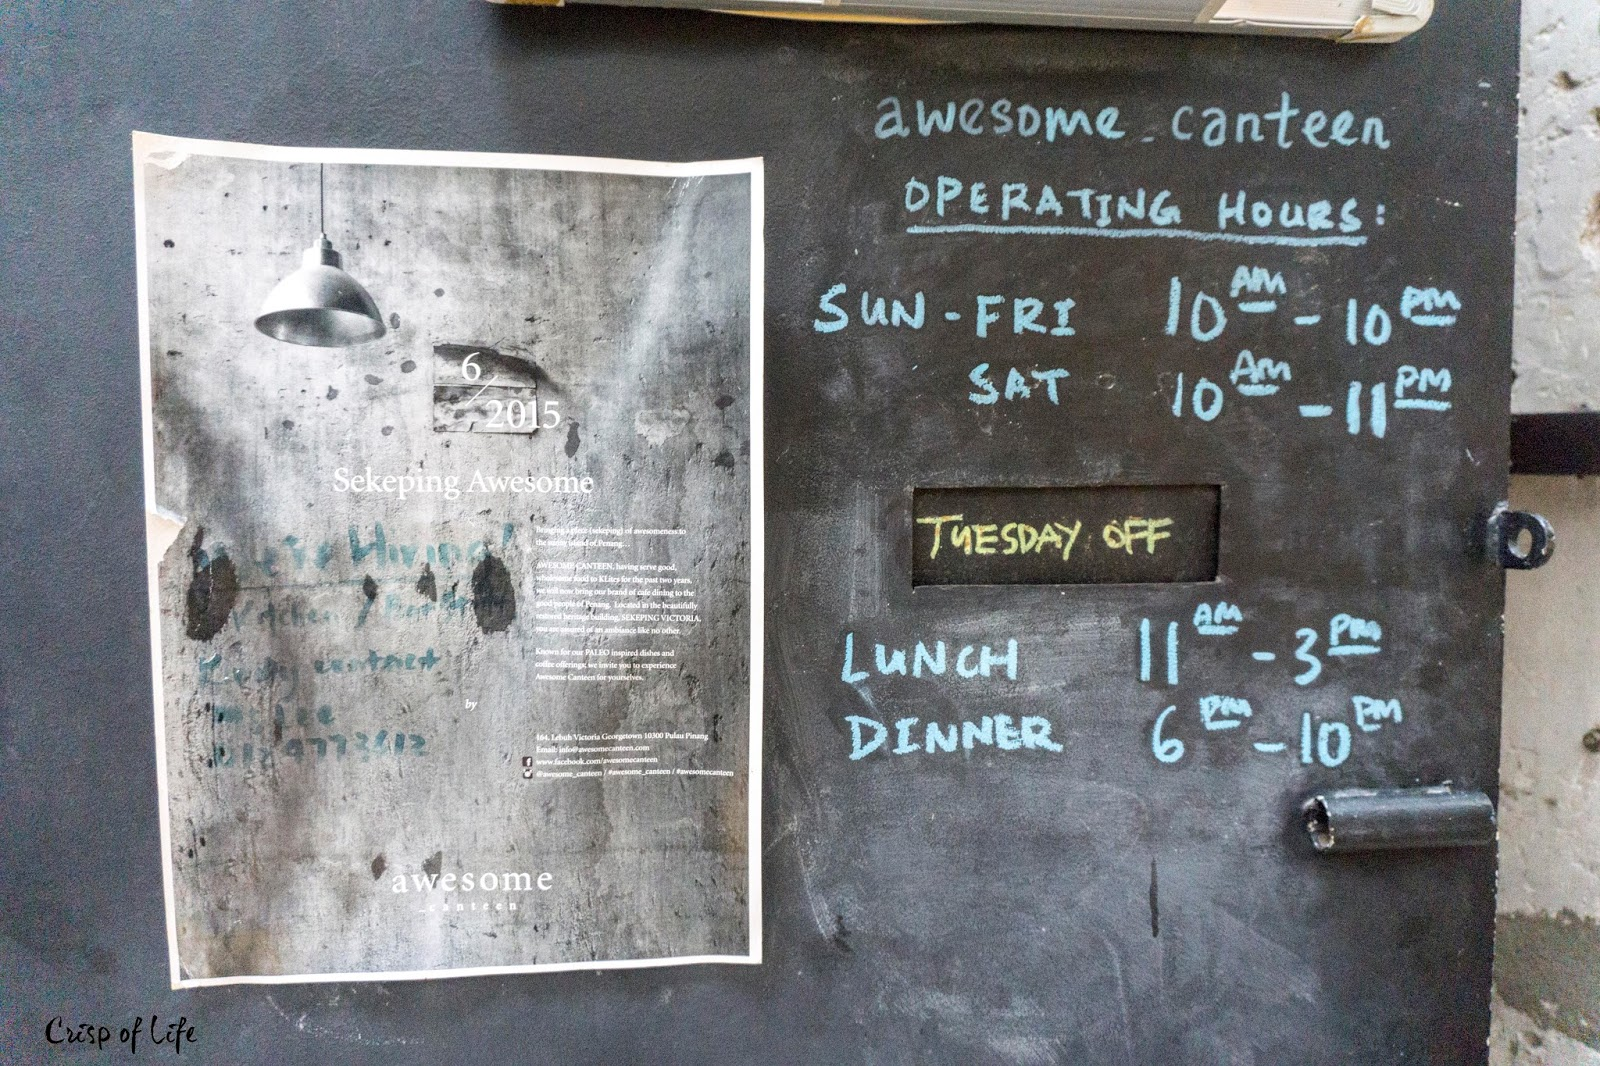 Awesome Canteen at Sekeping Victoria, Lebuh Victoria, Georgetown, Penang